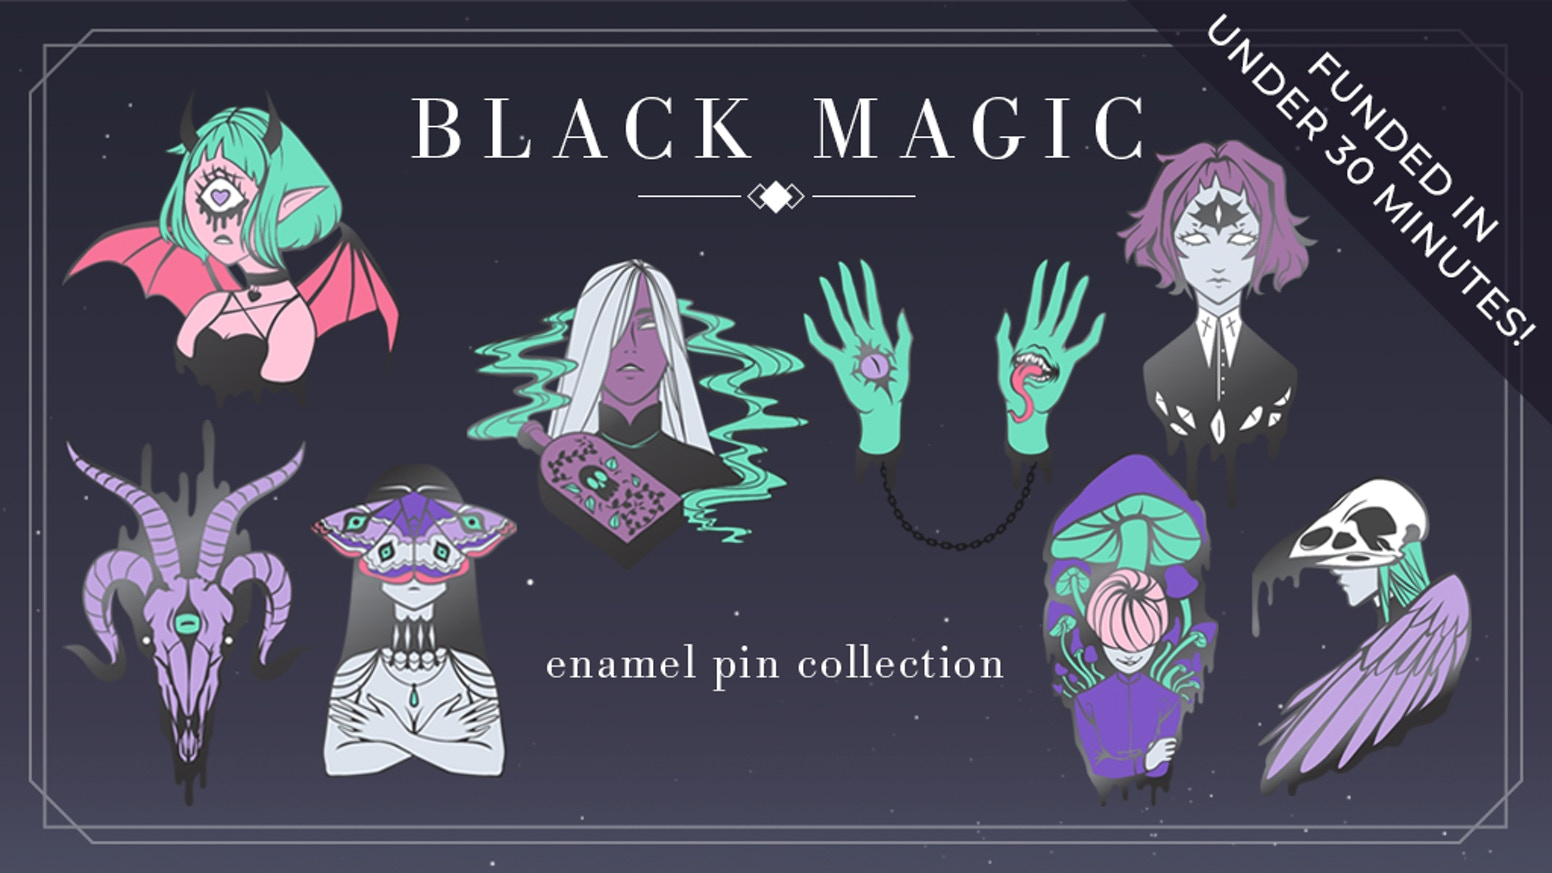 A set of occult-themed hard enamel pins for lovers of the macabre